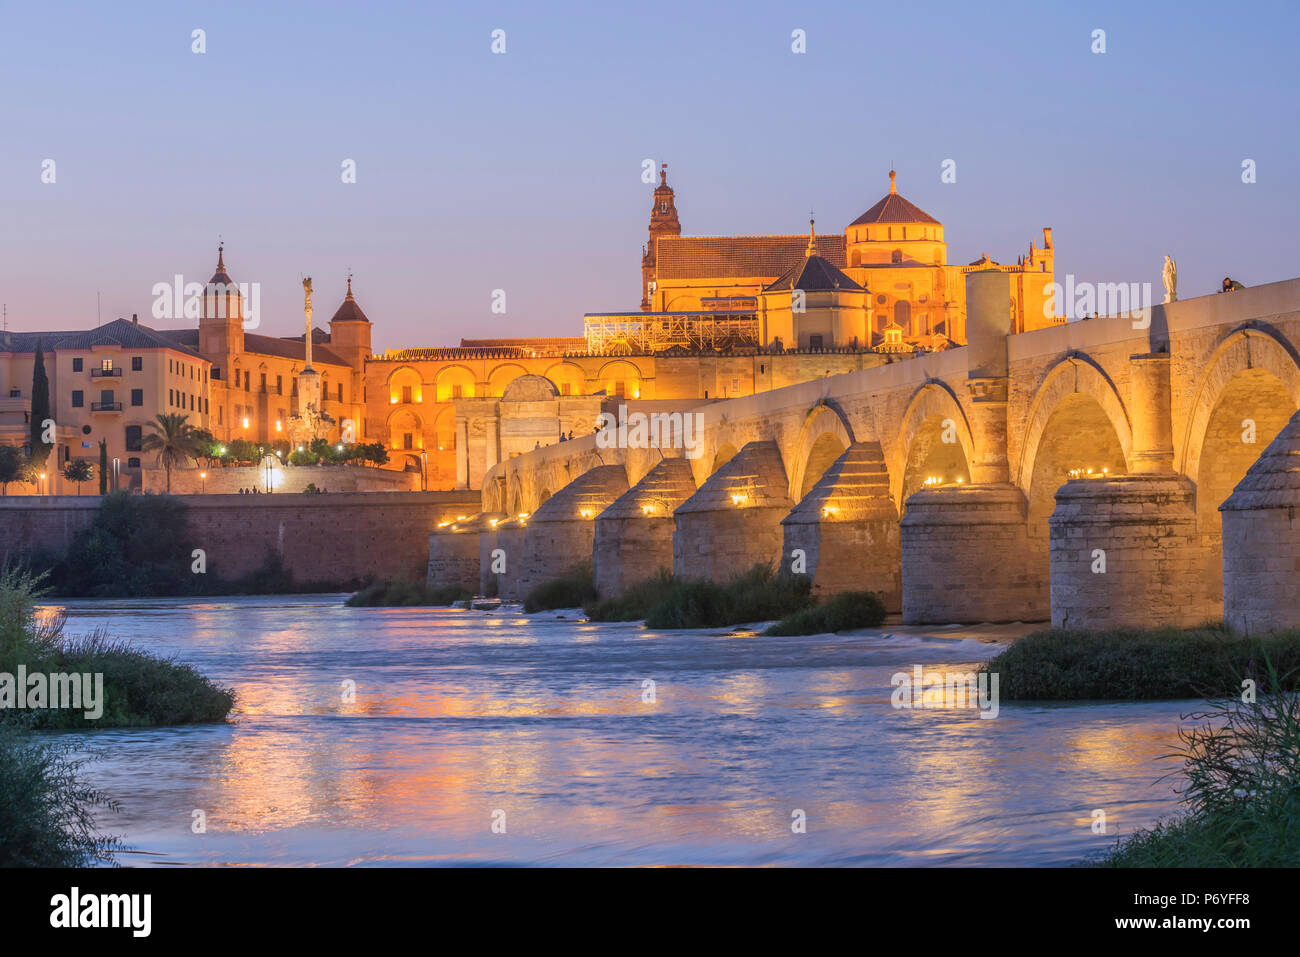 The Roman bridge of Cordoba With Mezquita and  River Gaudalquivir, UNESCO World Heritage Site, Cordoba, Andalusia, Spain - Stock Image